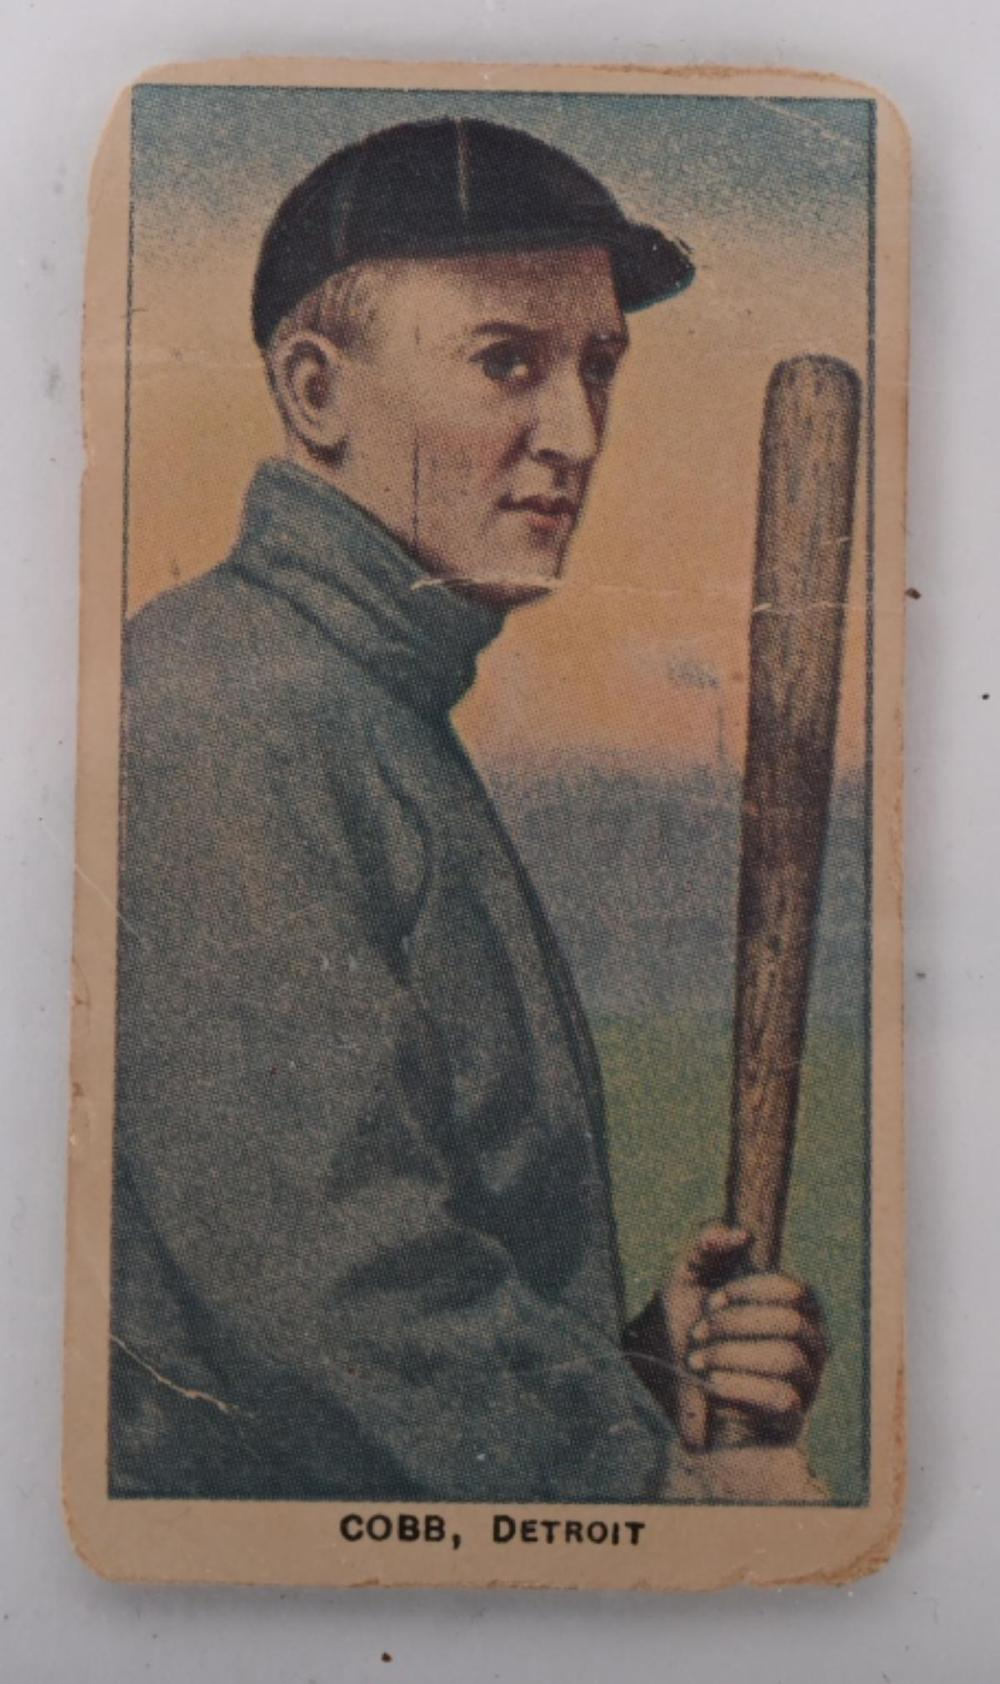 SWEET CAPORAL T-206 TY COBB TOBACCO CARD